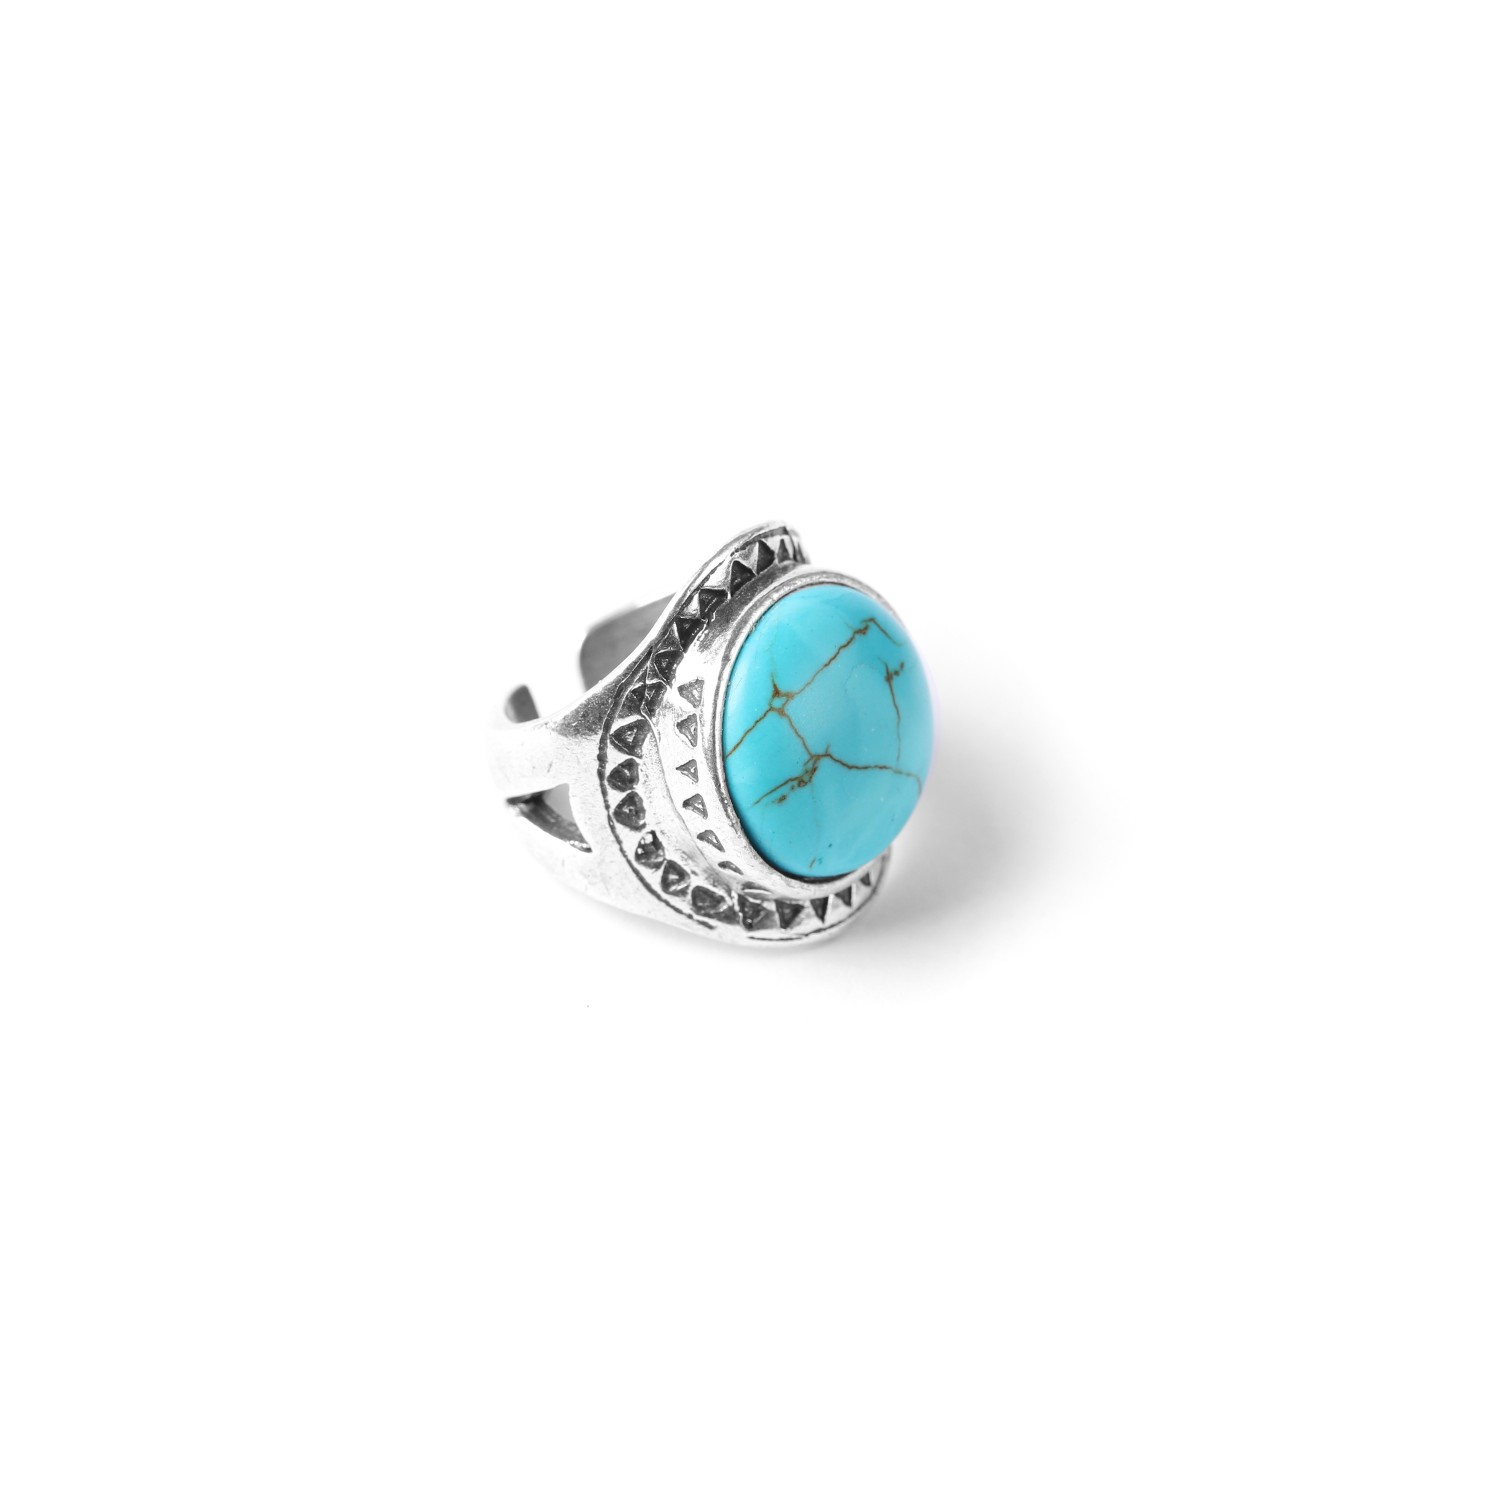 LES CHEVALIERES bague howlite turquoise